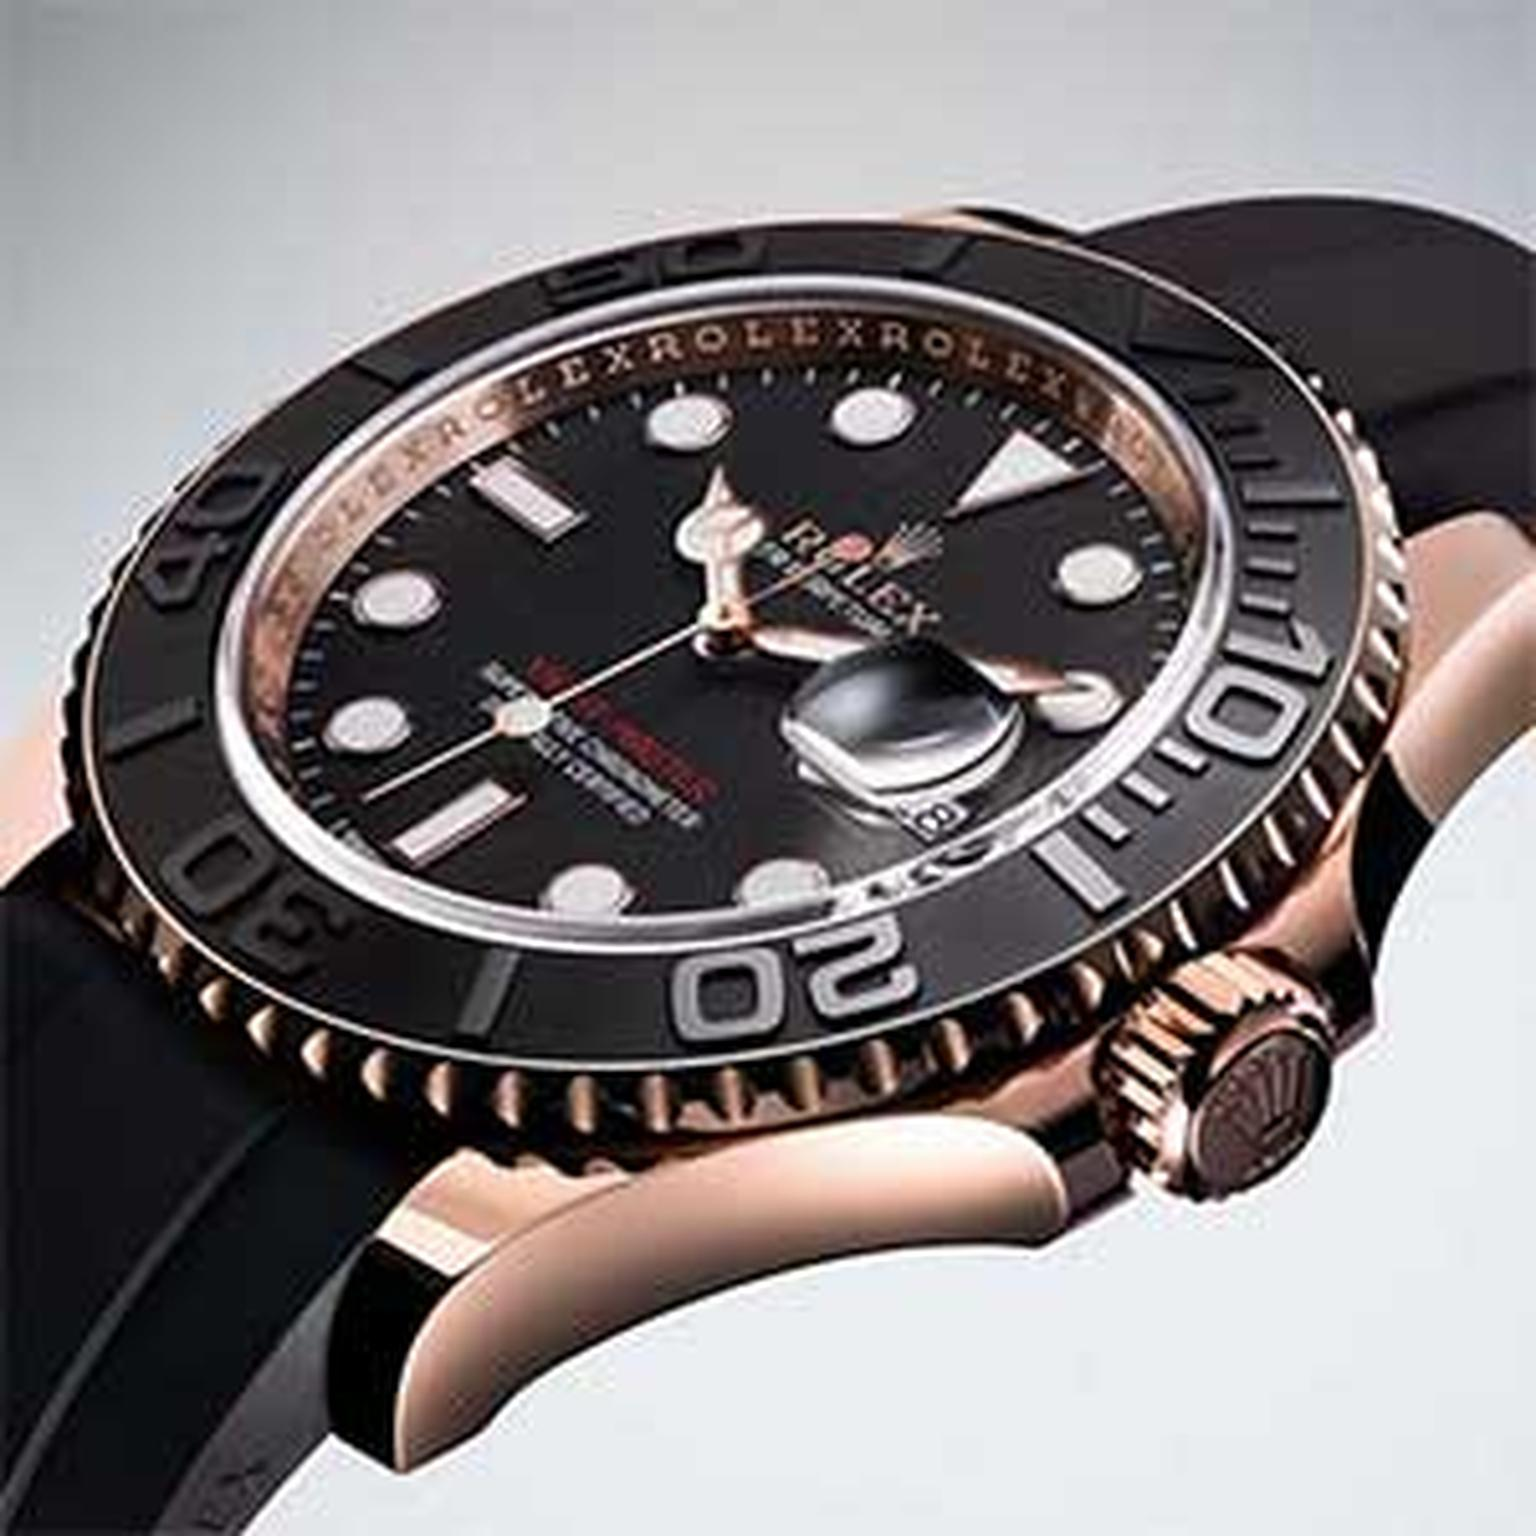 Rolex -Yacht -Master -watch -black